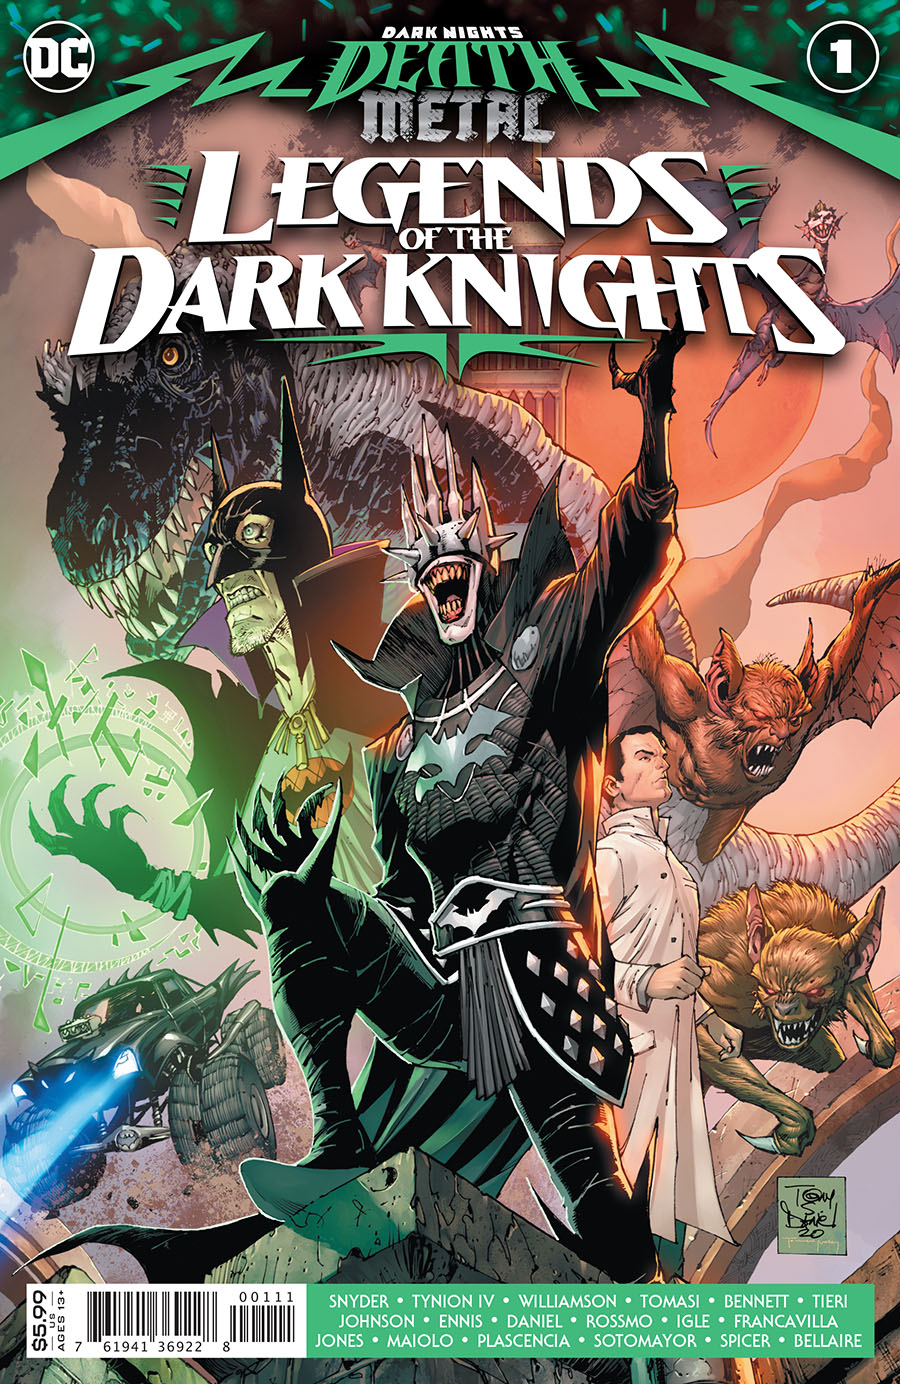 Dark Nights Death Metal Legends Of The Dark Knights #1 Cover A Regular Tony S Daniel Card Stock Cover